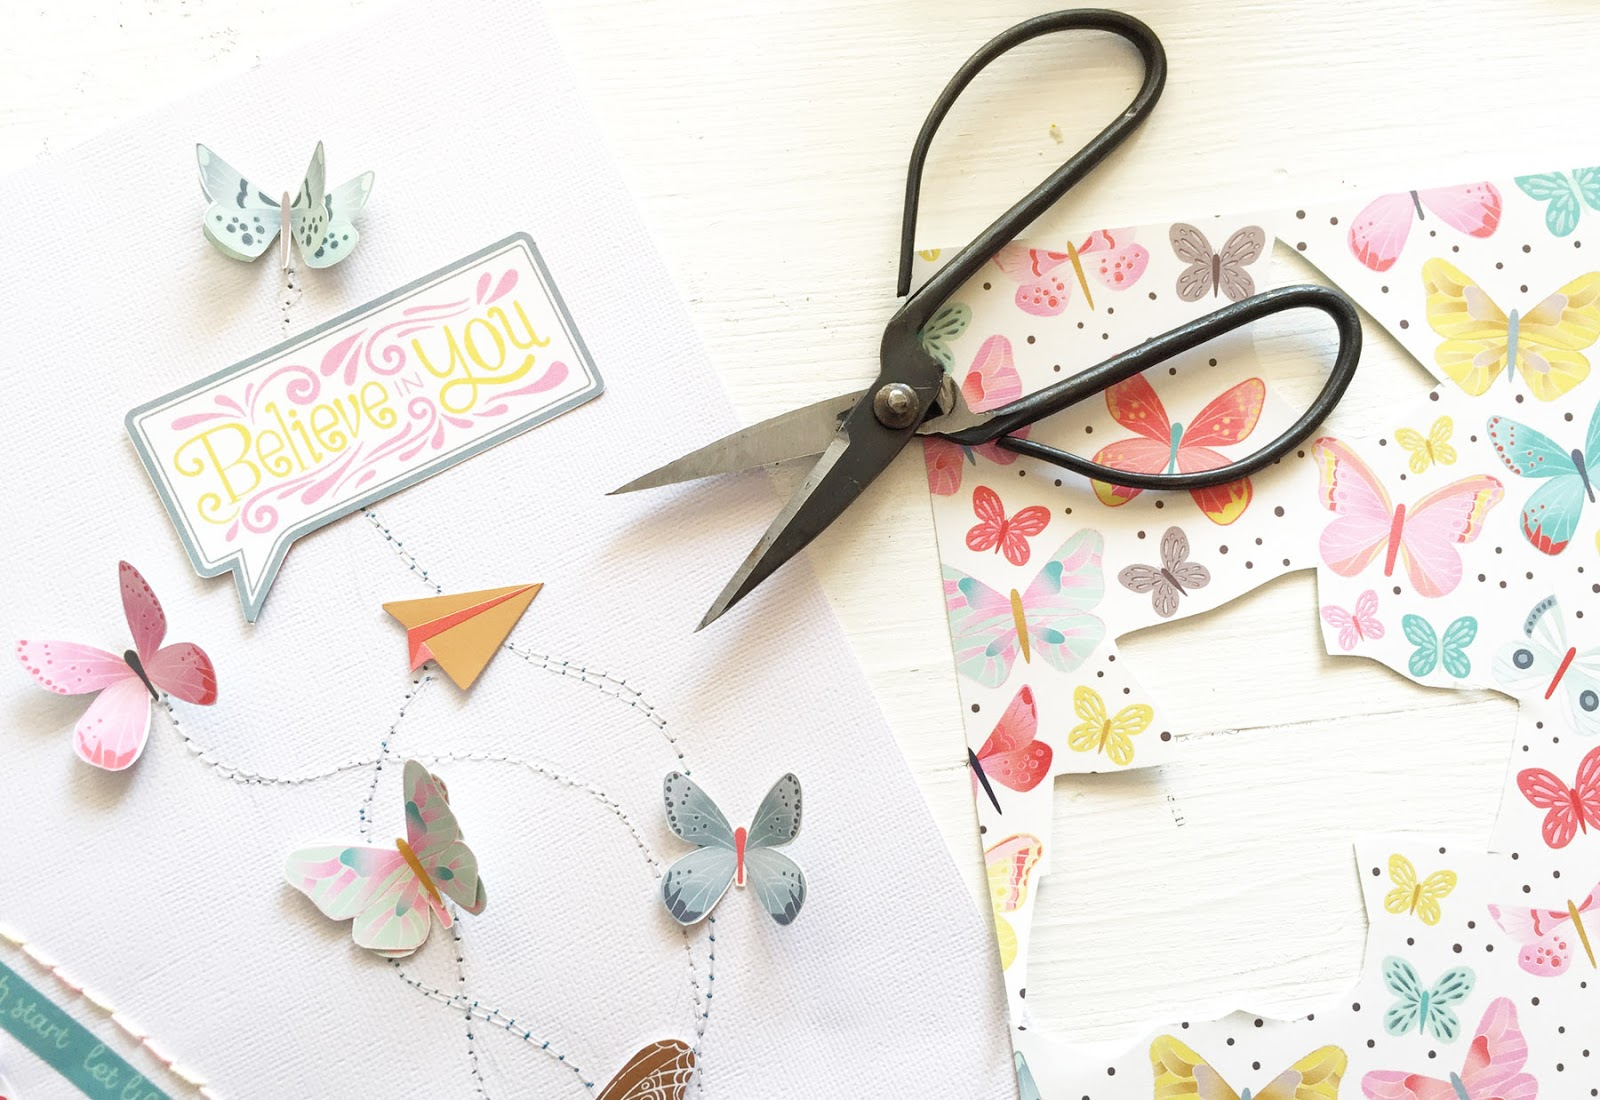 Believe in You Layout by Steffi Ried | Paige Taylor Evans